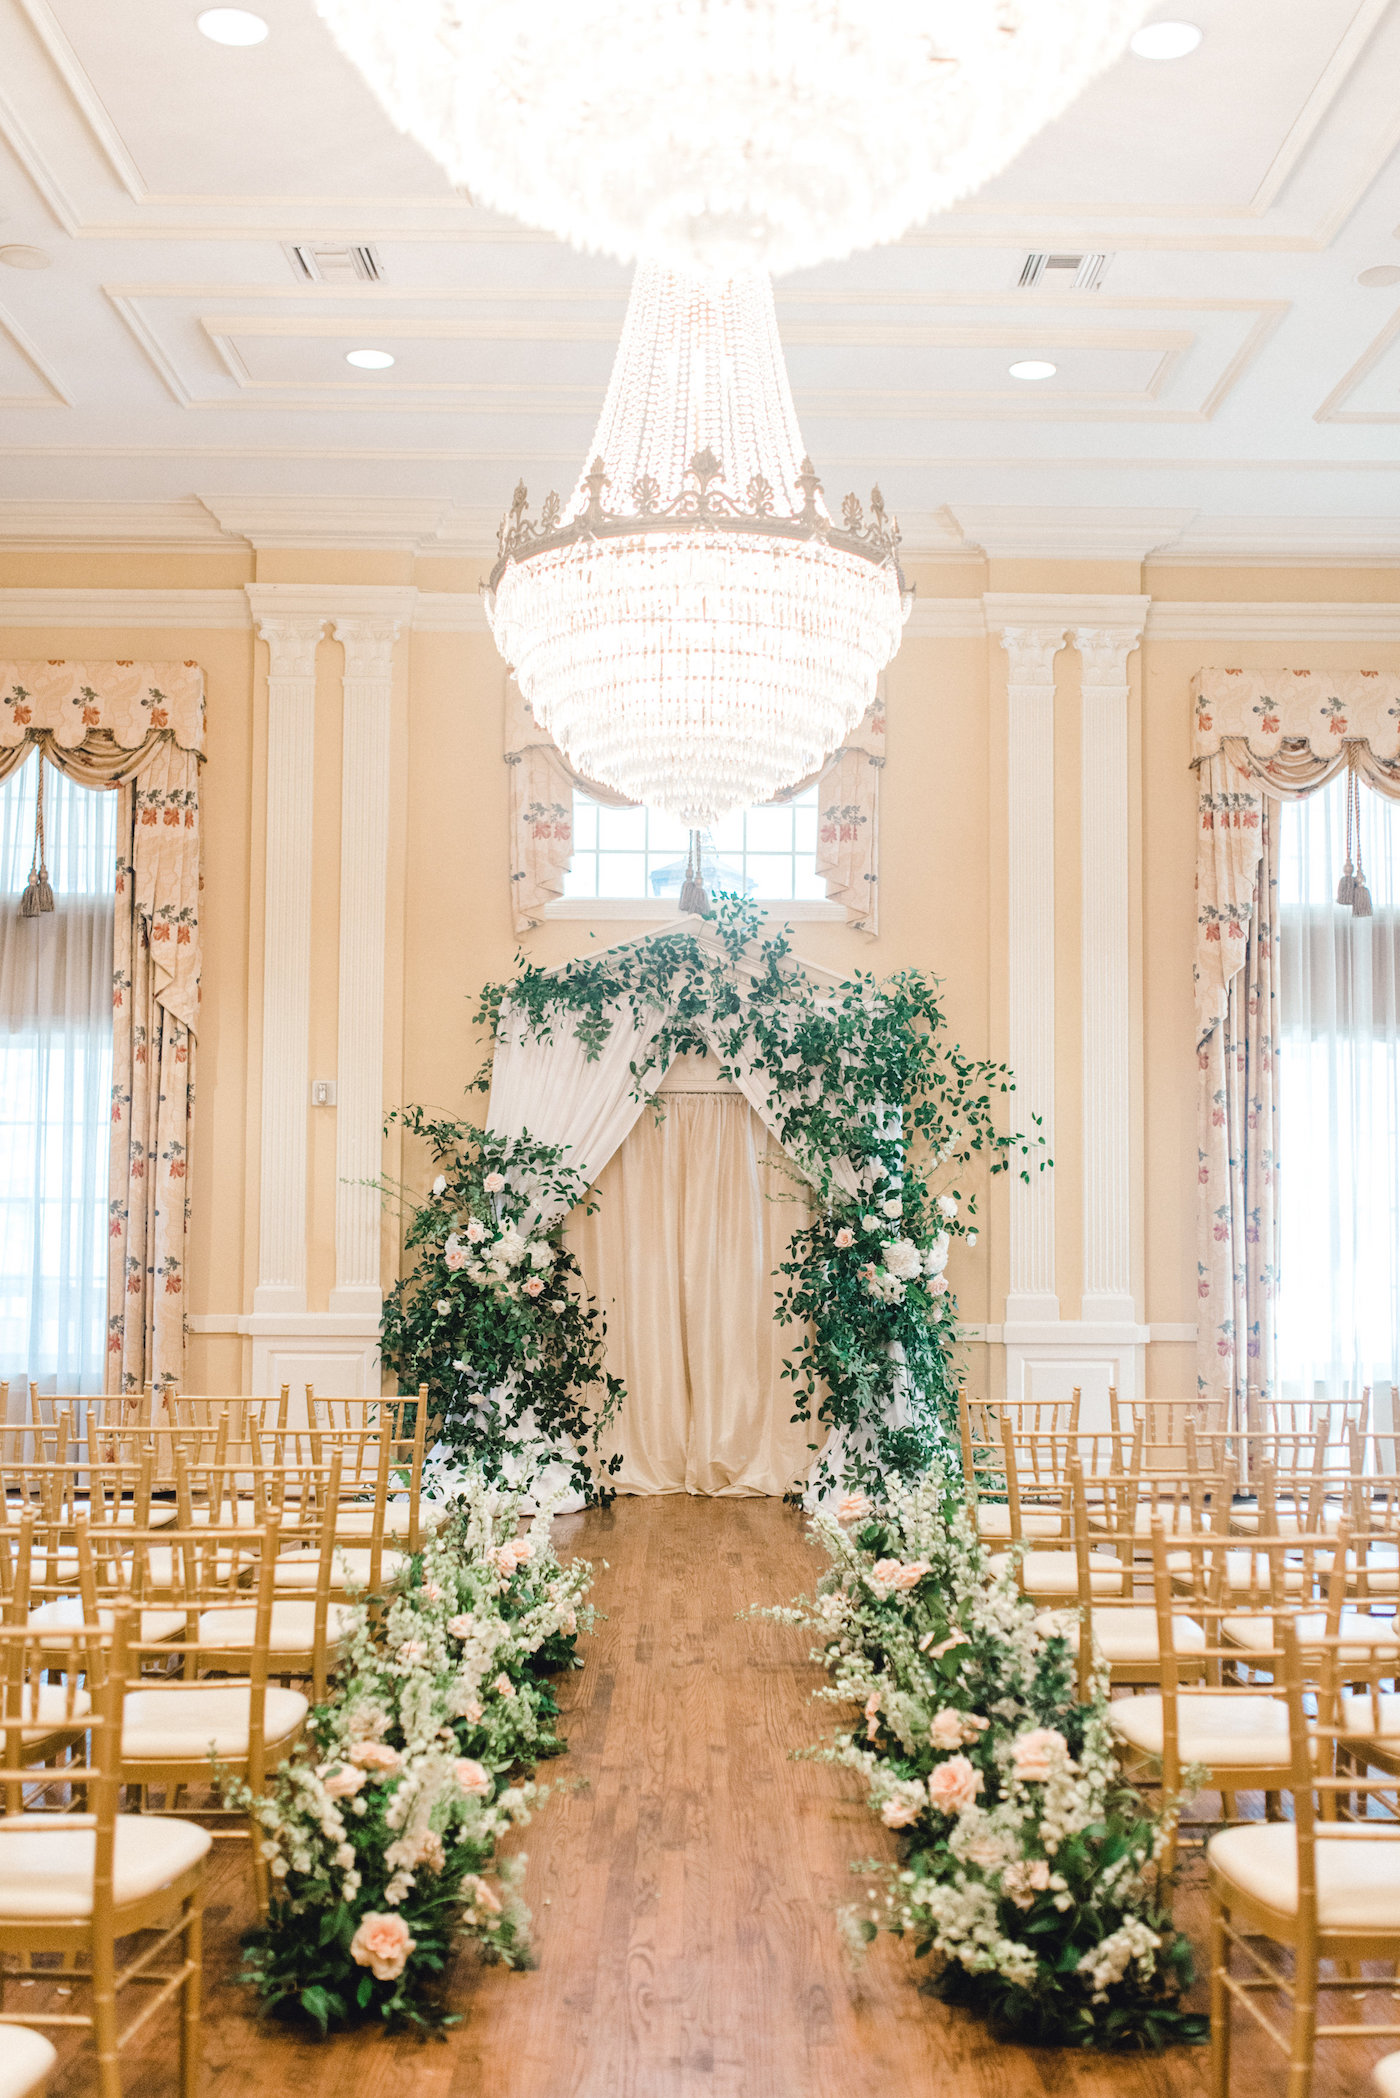 Romantic Wedding Ceremony with Greenery